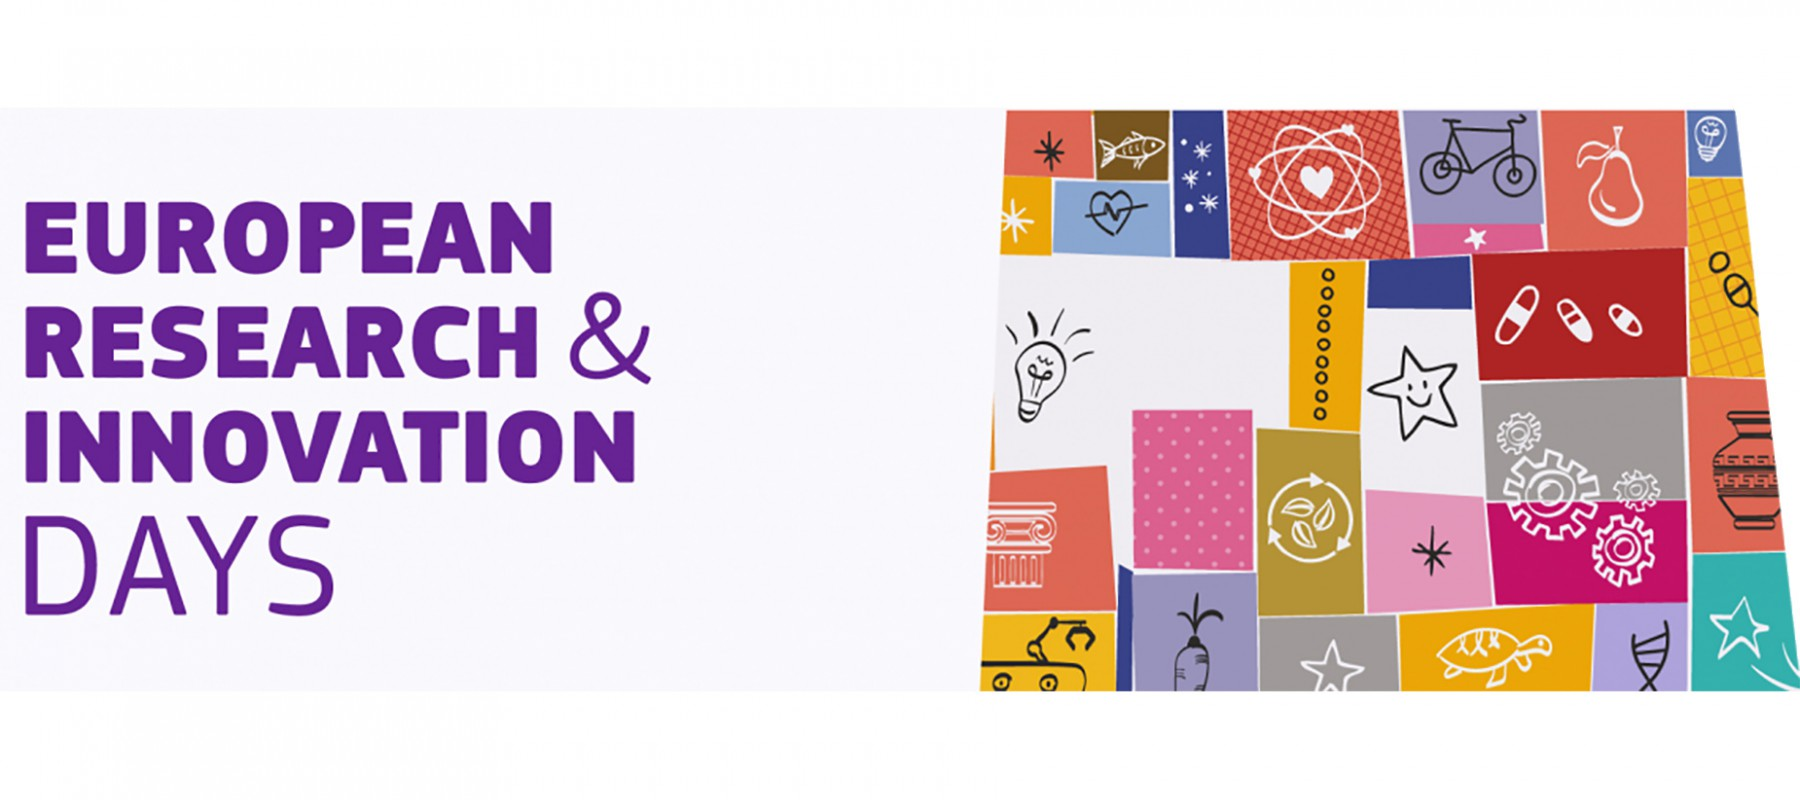 European Research & Innovation Days Banner